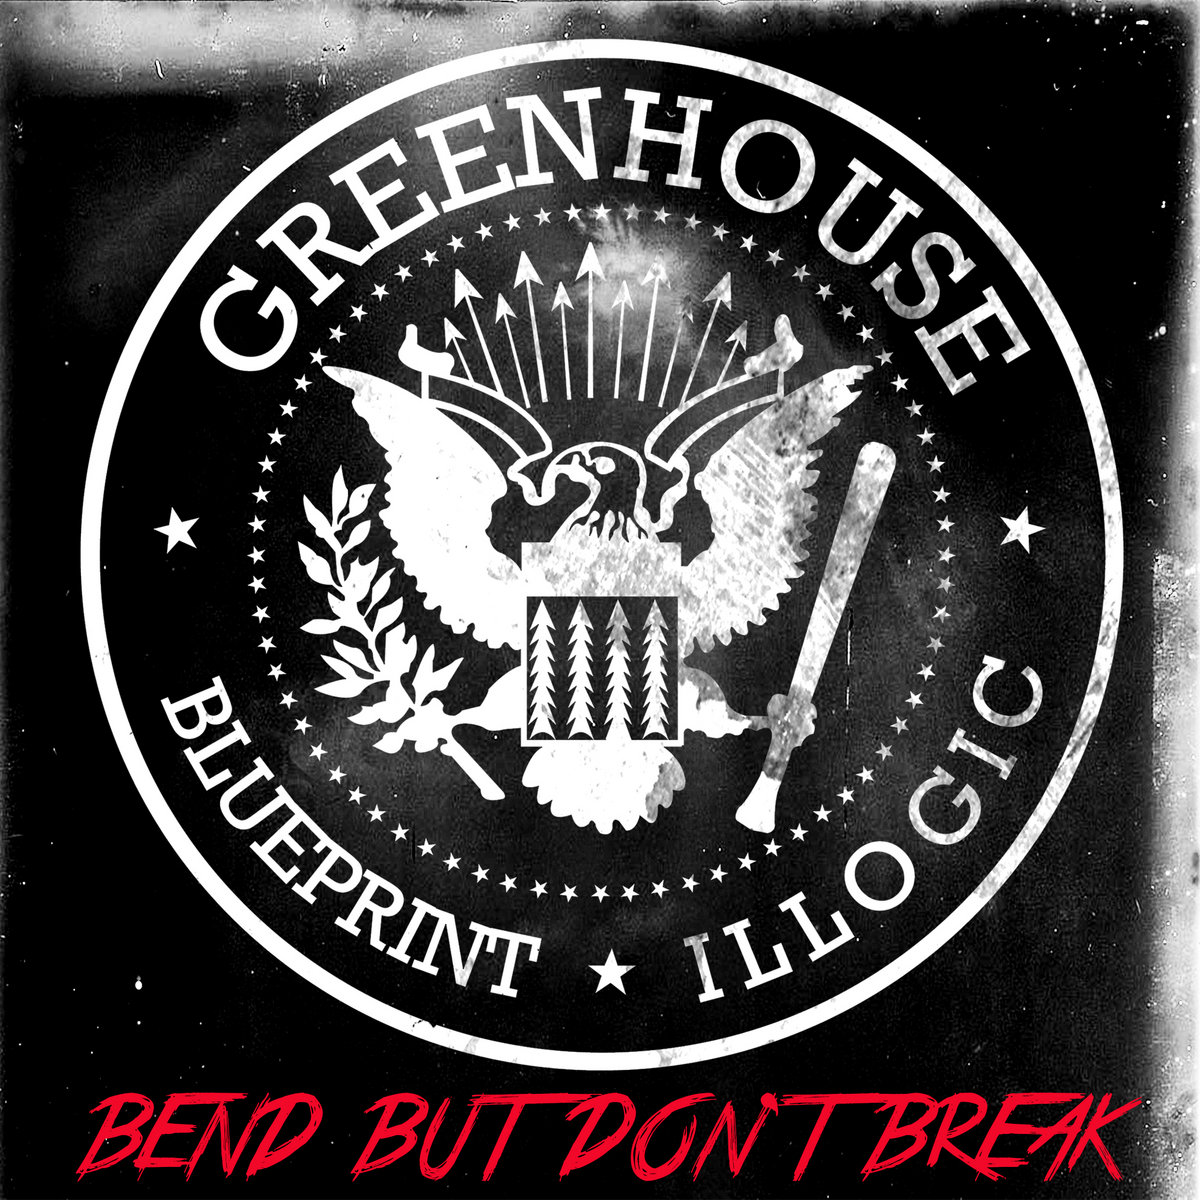 Bend but dont break retail version greenhouse blueprint illogic by greenhouse blueprint illogic malvernweather Gallery